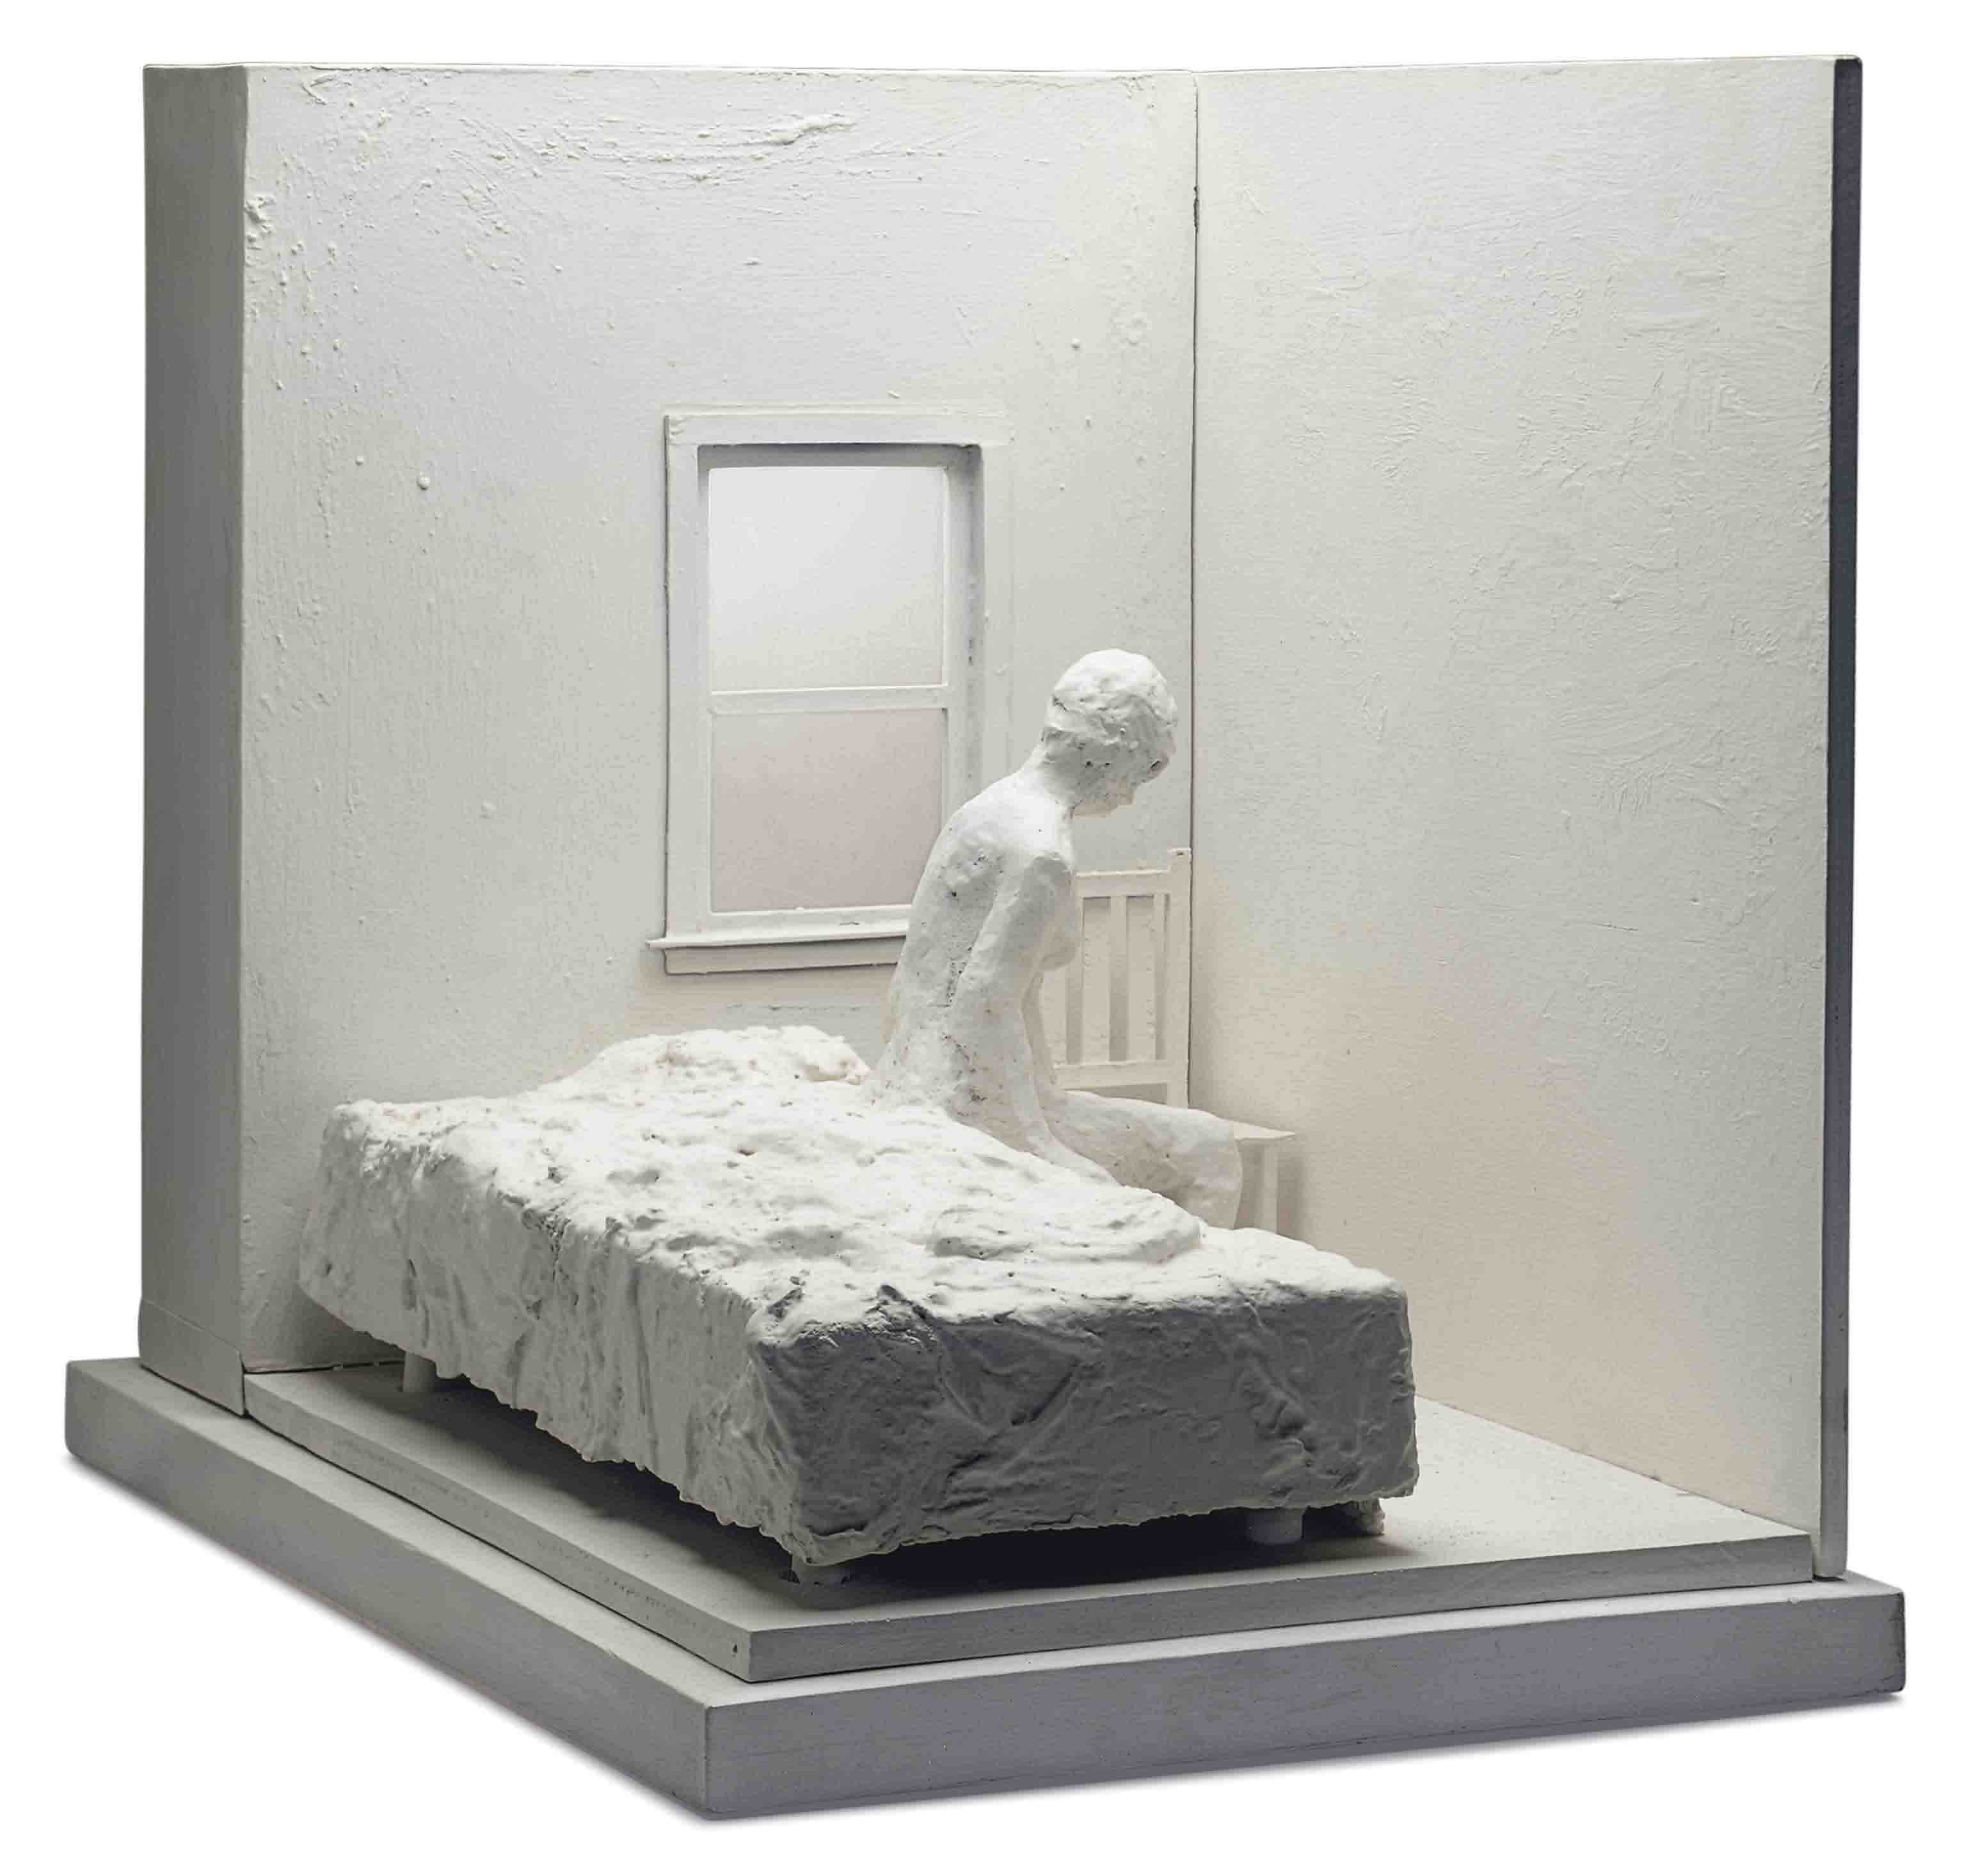 GEORGE SEGAL (1924-2000)